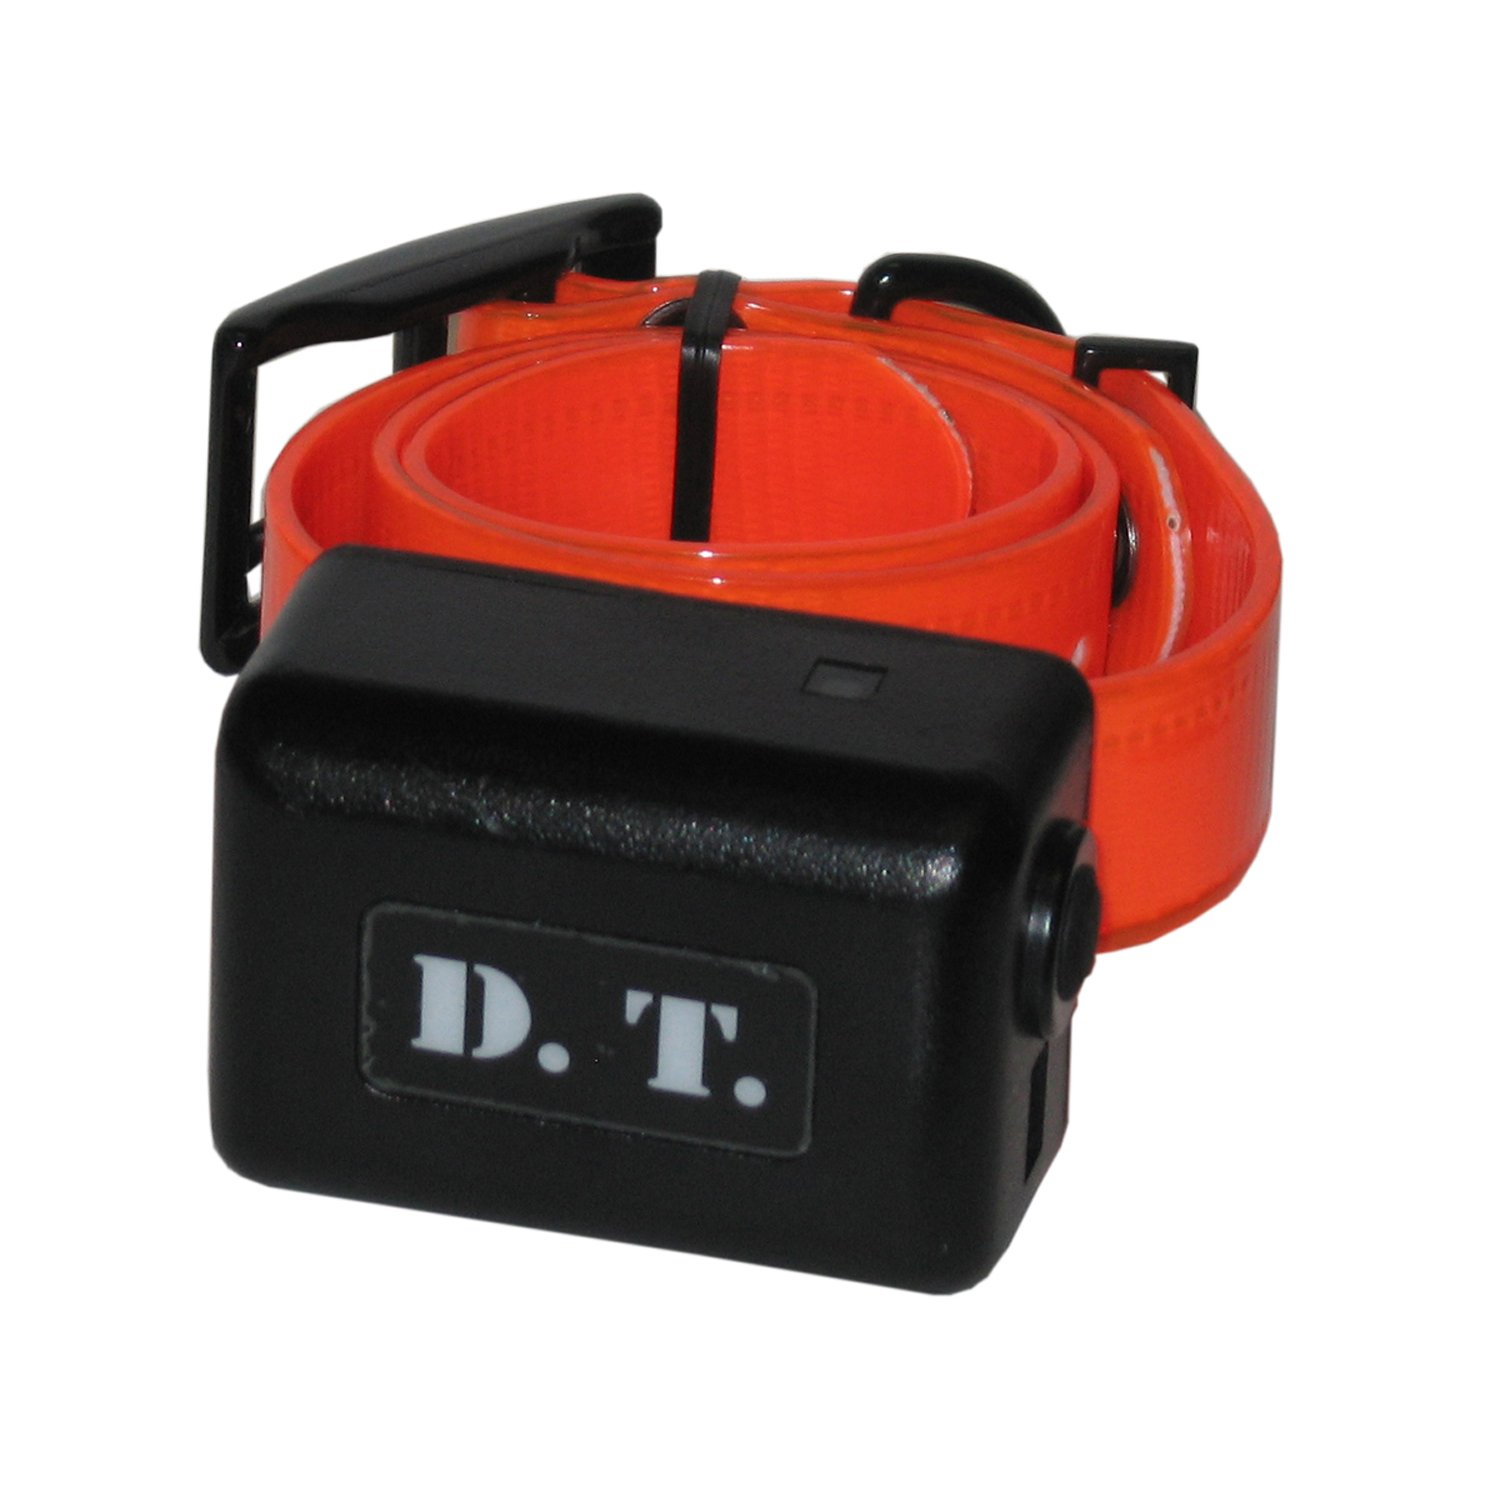 DT Systems Add-On or Replacement Dog Training Collar Receiver, Blaze orange